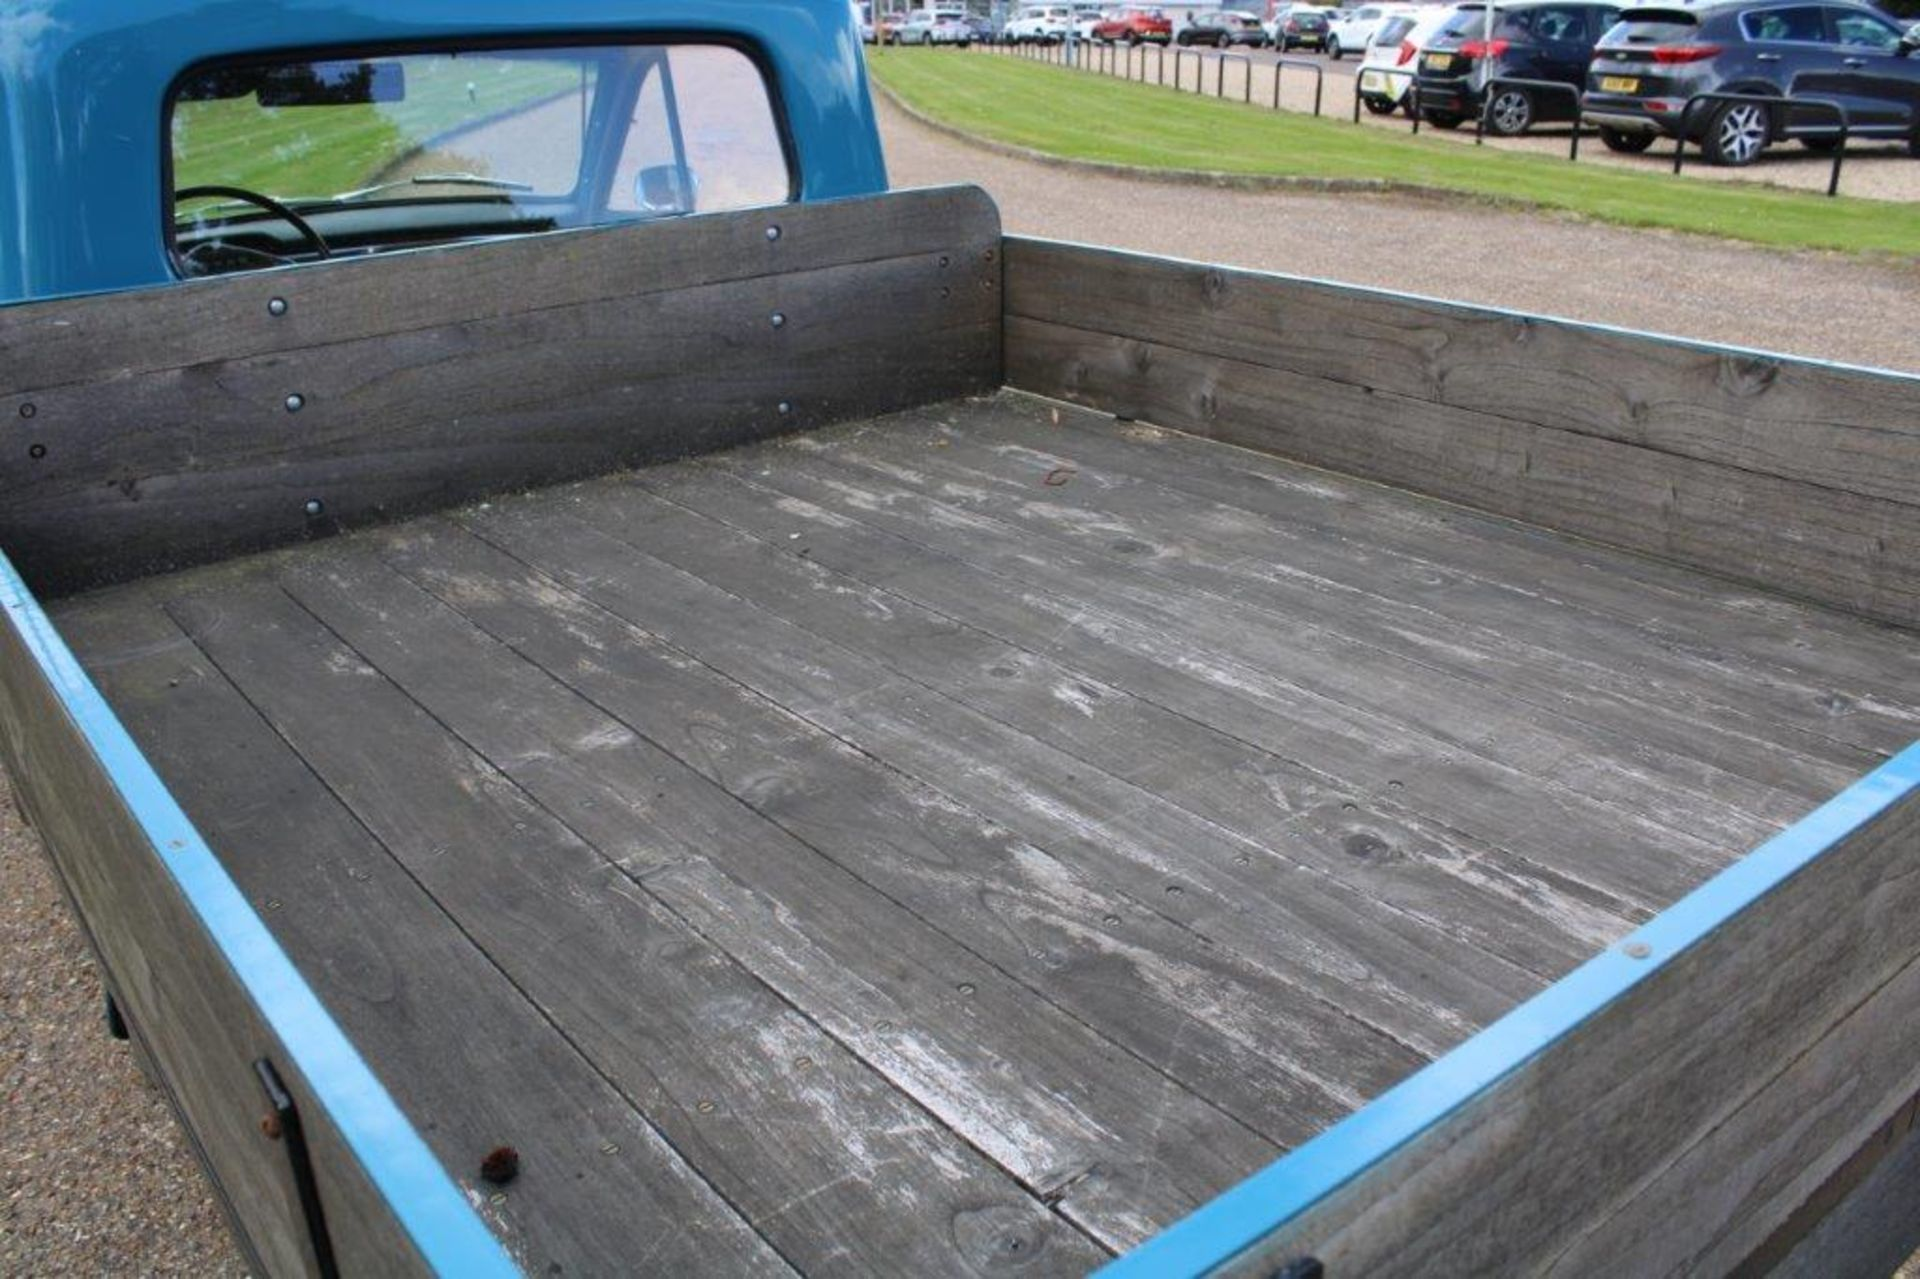 1961 Volvo P 21114 A Pick-Up LHD - Image 11 of 25